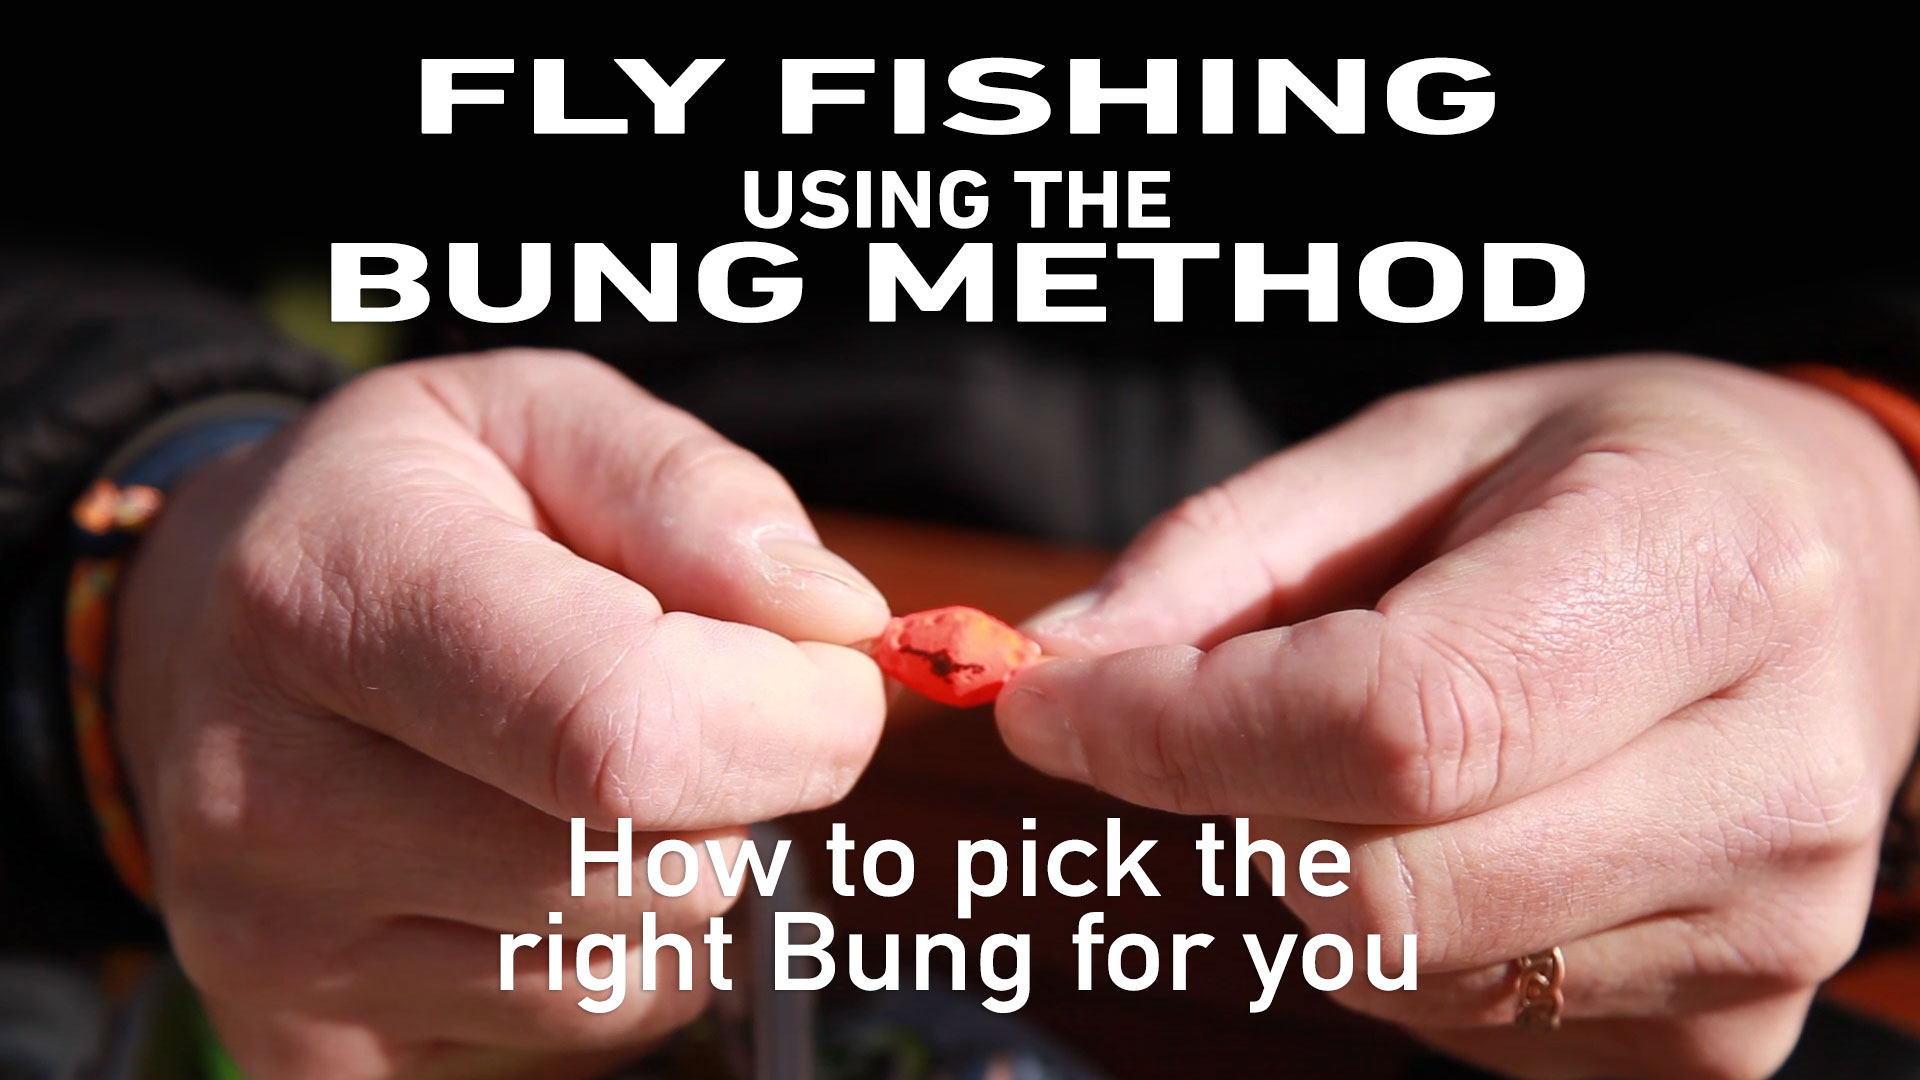 Fly fishing using the bung method